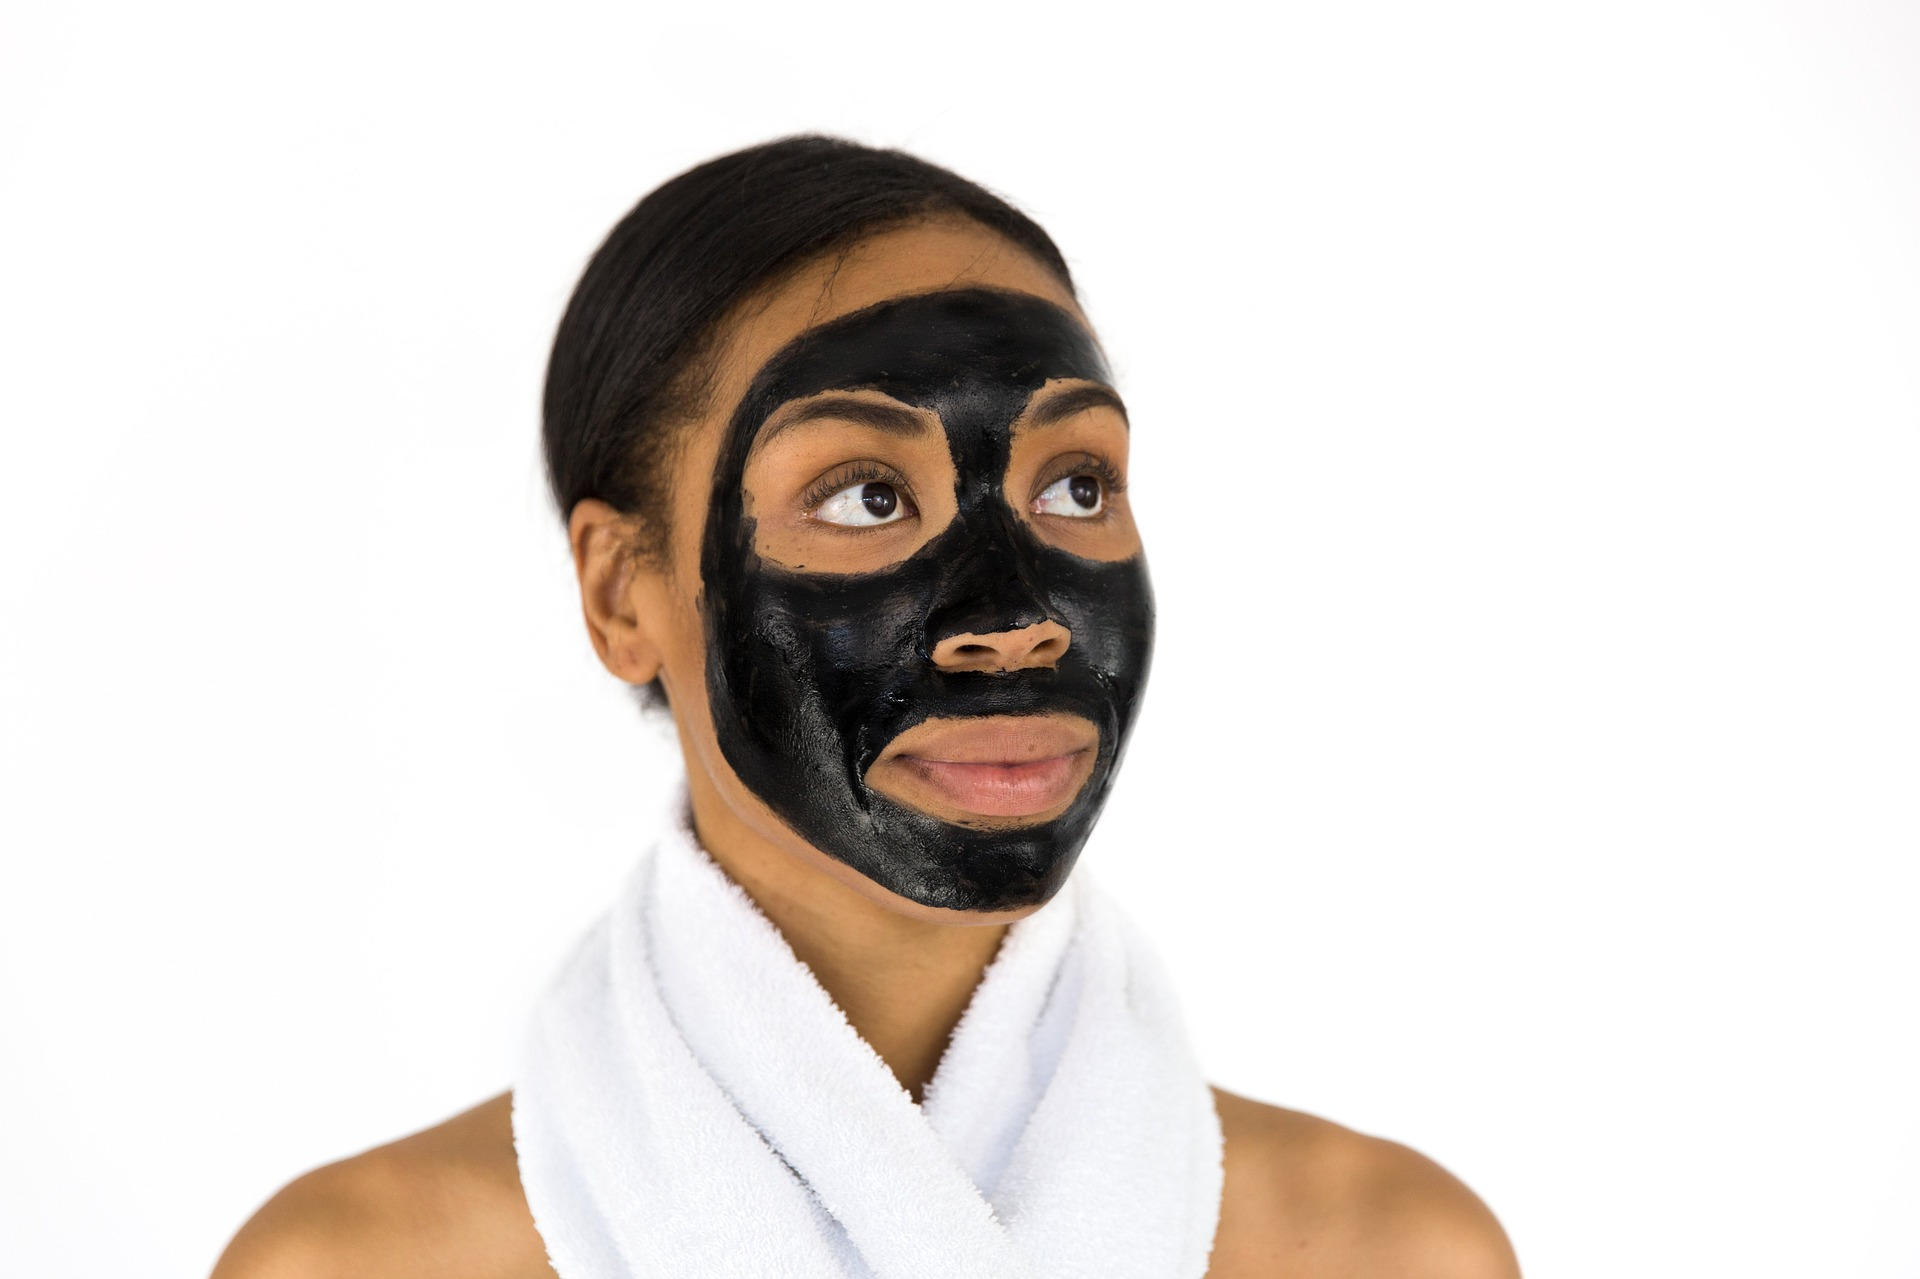 face-mask-2578428_1920